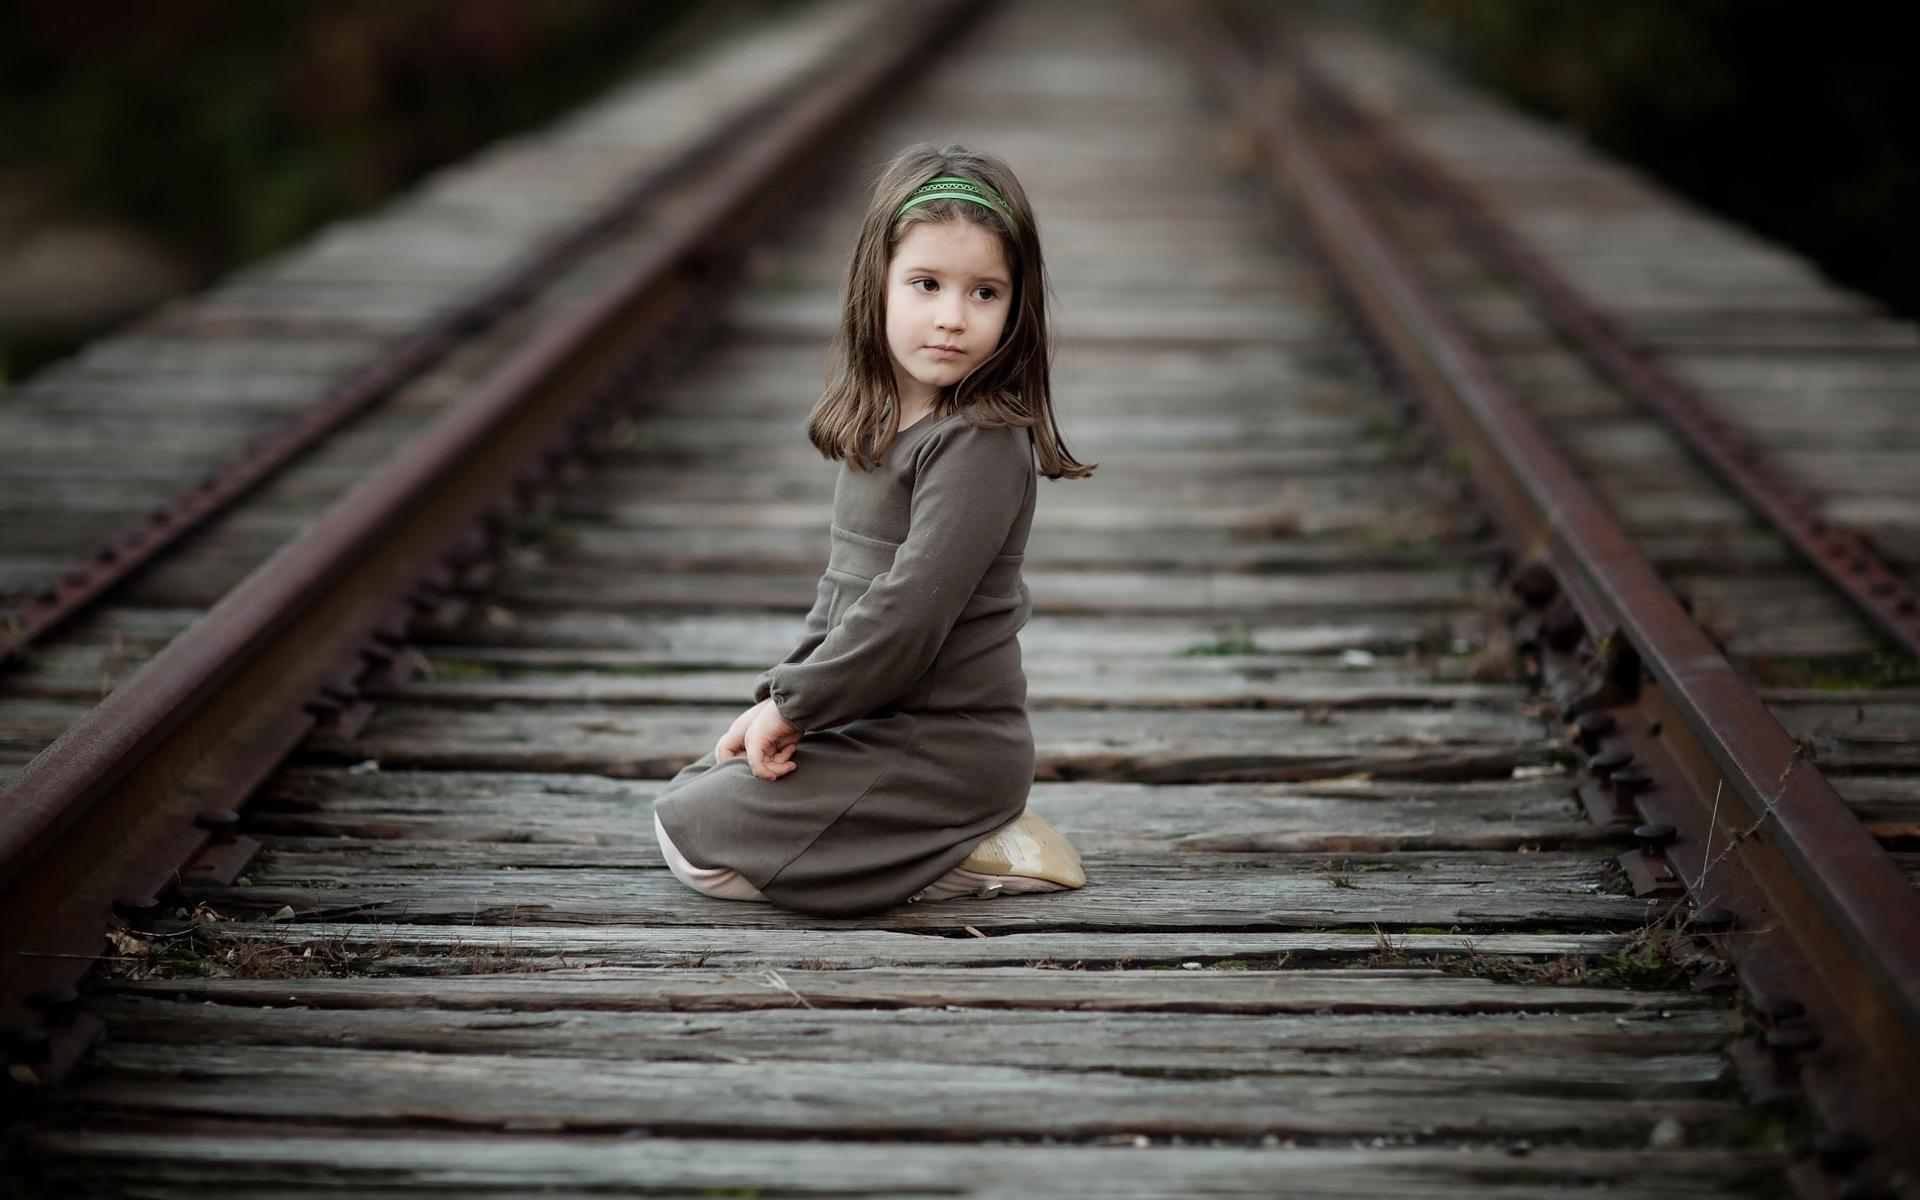 child full hd wallpaper and background image | 1920x1200 | id:196389